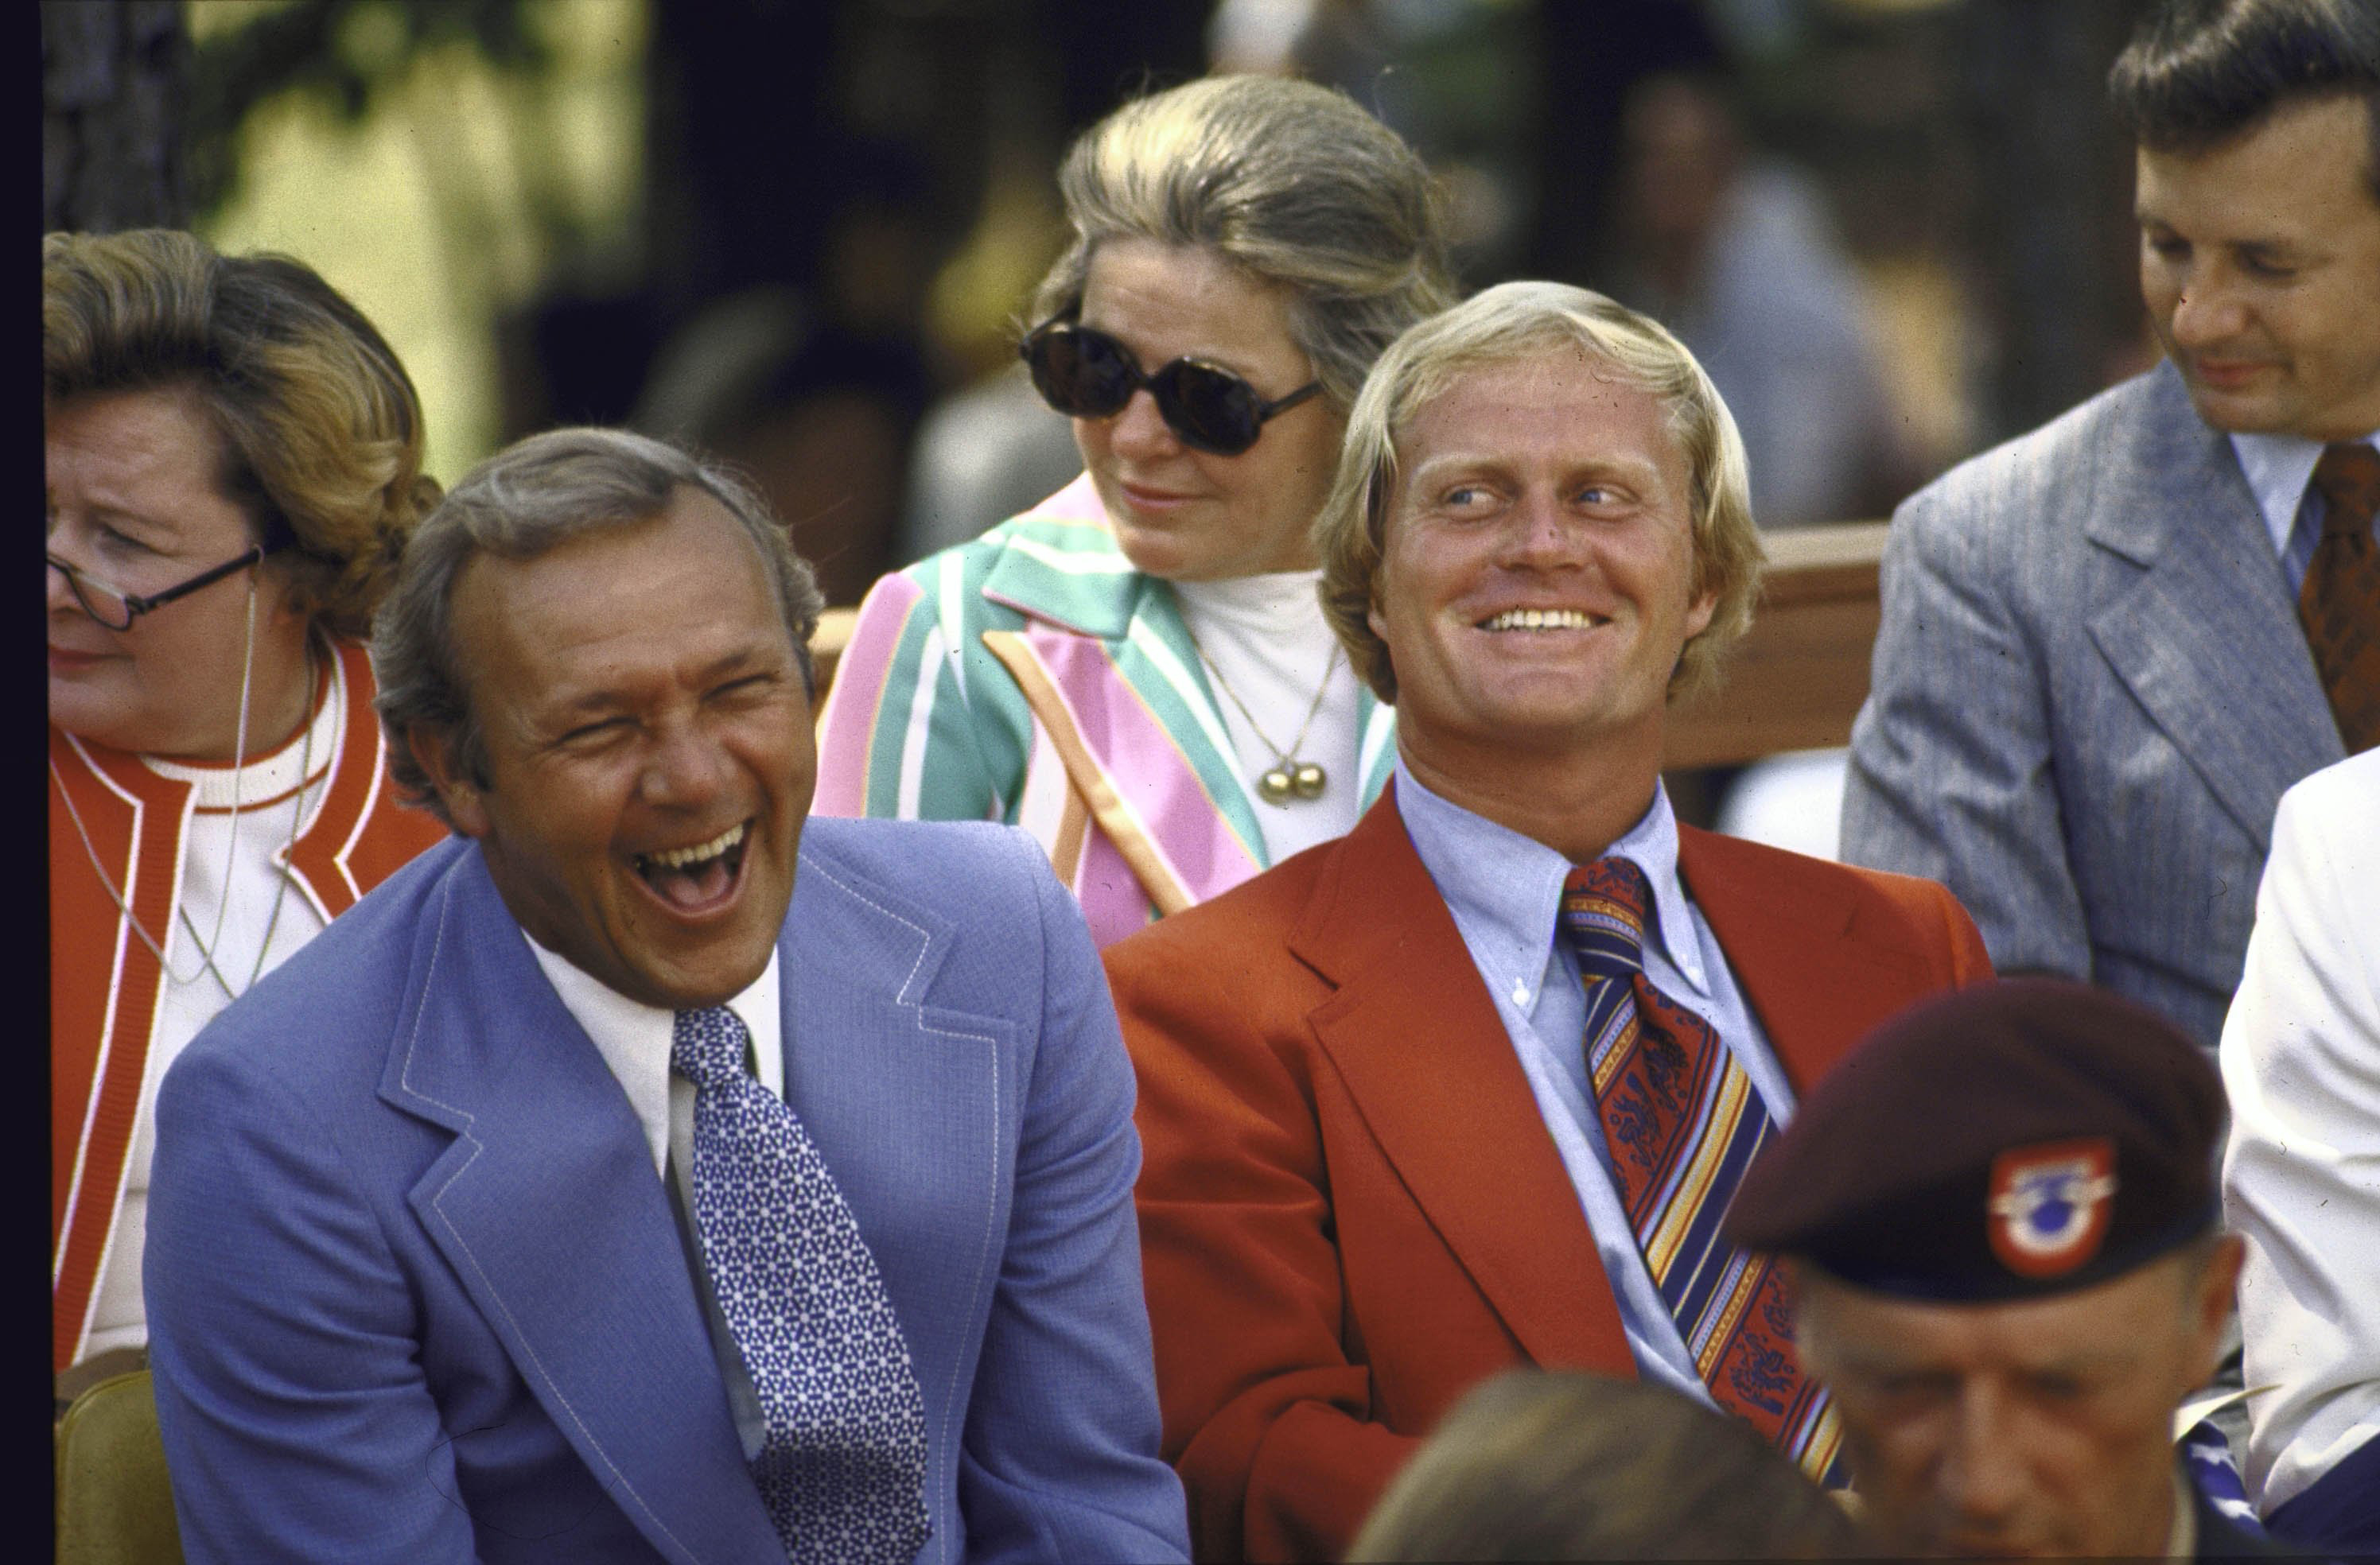 Arnold Palmer and Jack Nicklaus share laugh at the Dedication Ceremony for World Golf Hall of Fame in 1974.